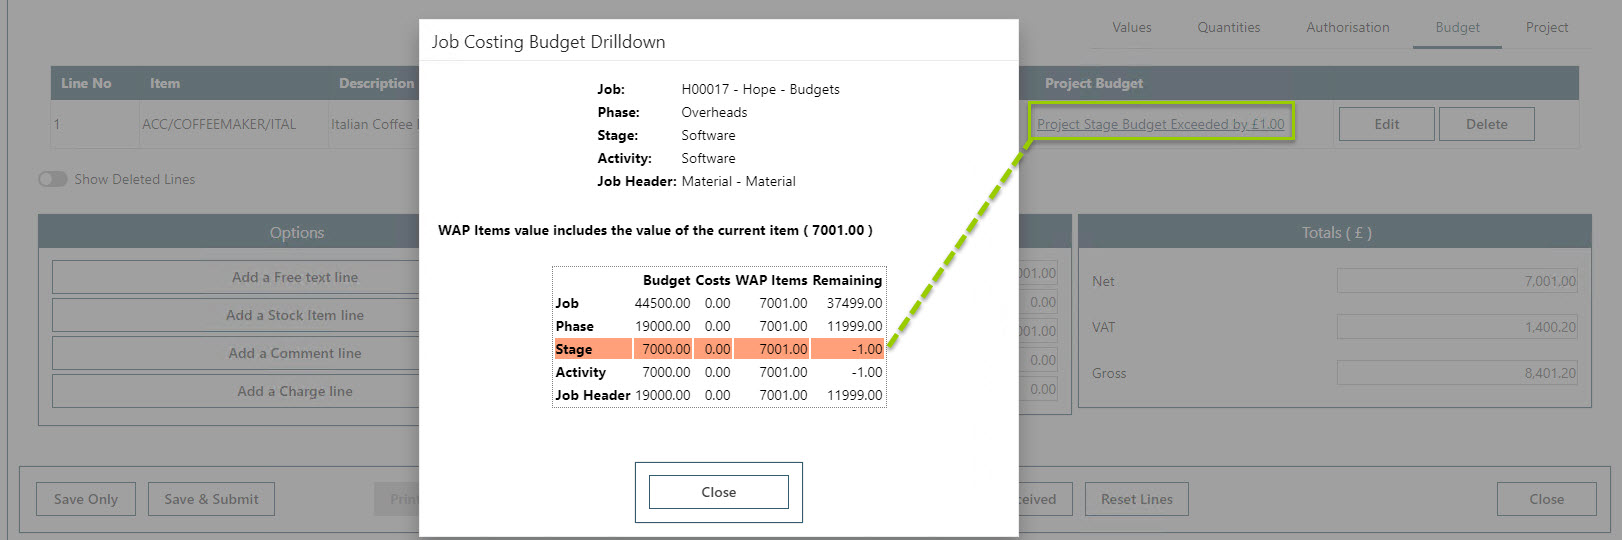 Sicon WAP Purchase Requisitions Help and User Guide - Requisition HUG Section 21.6 Image 5